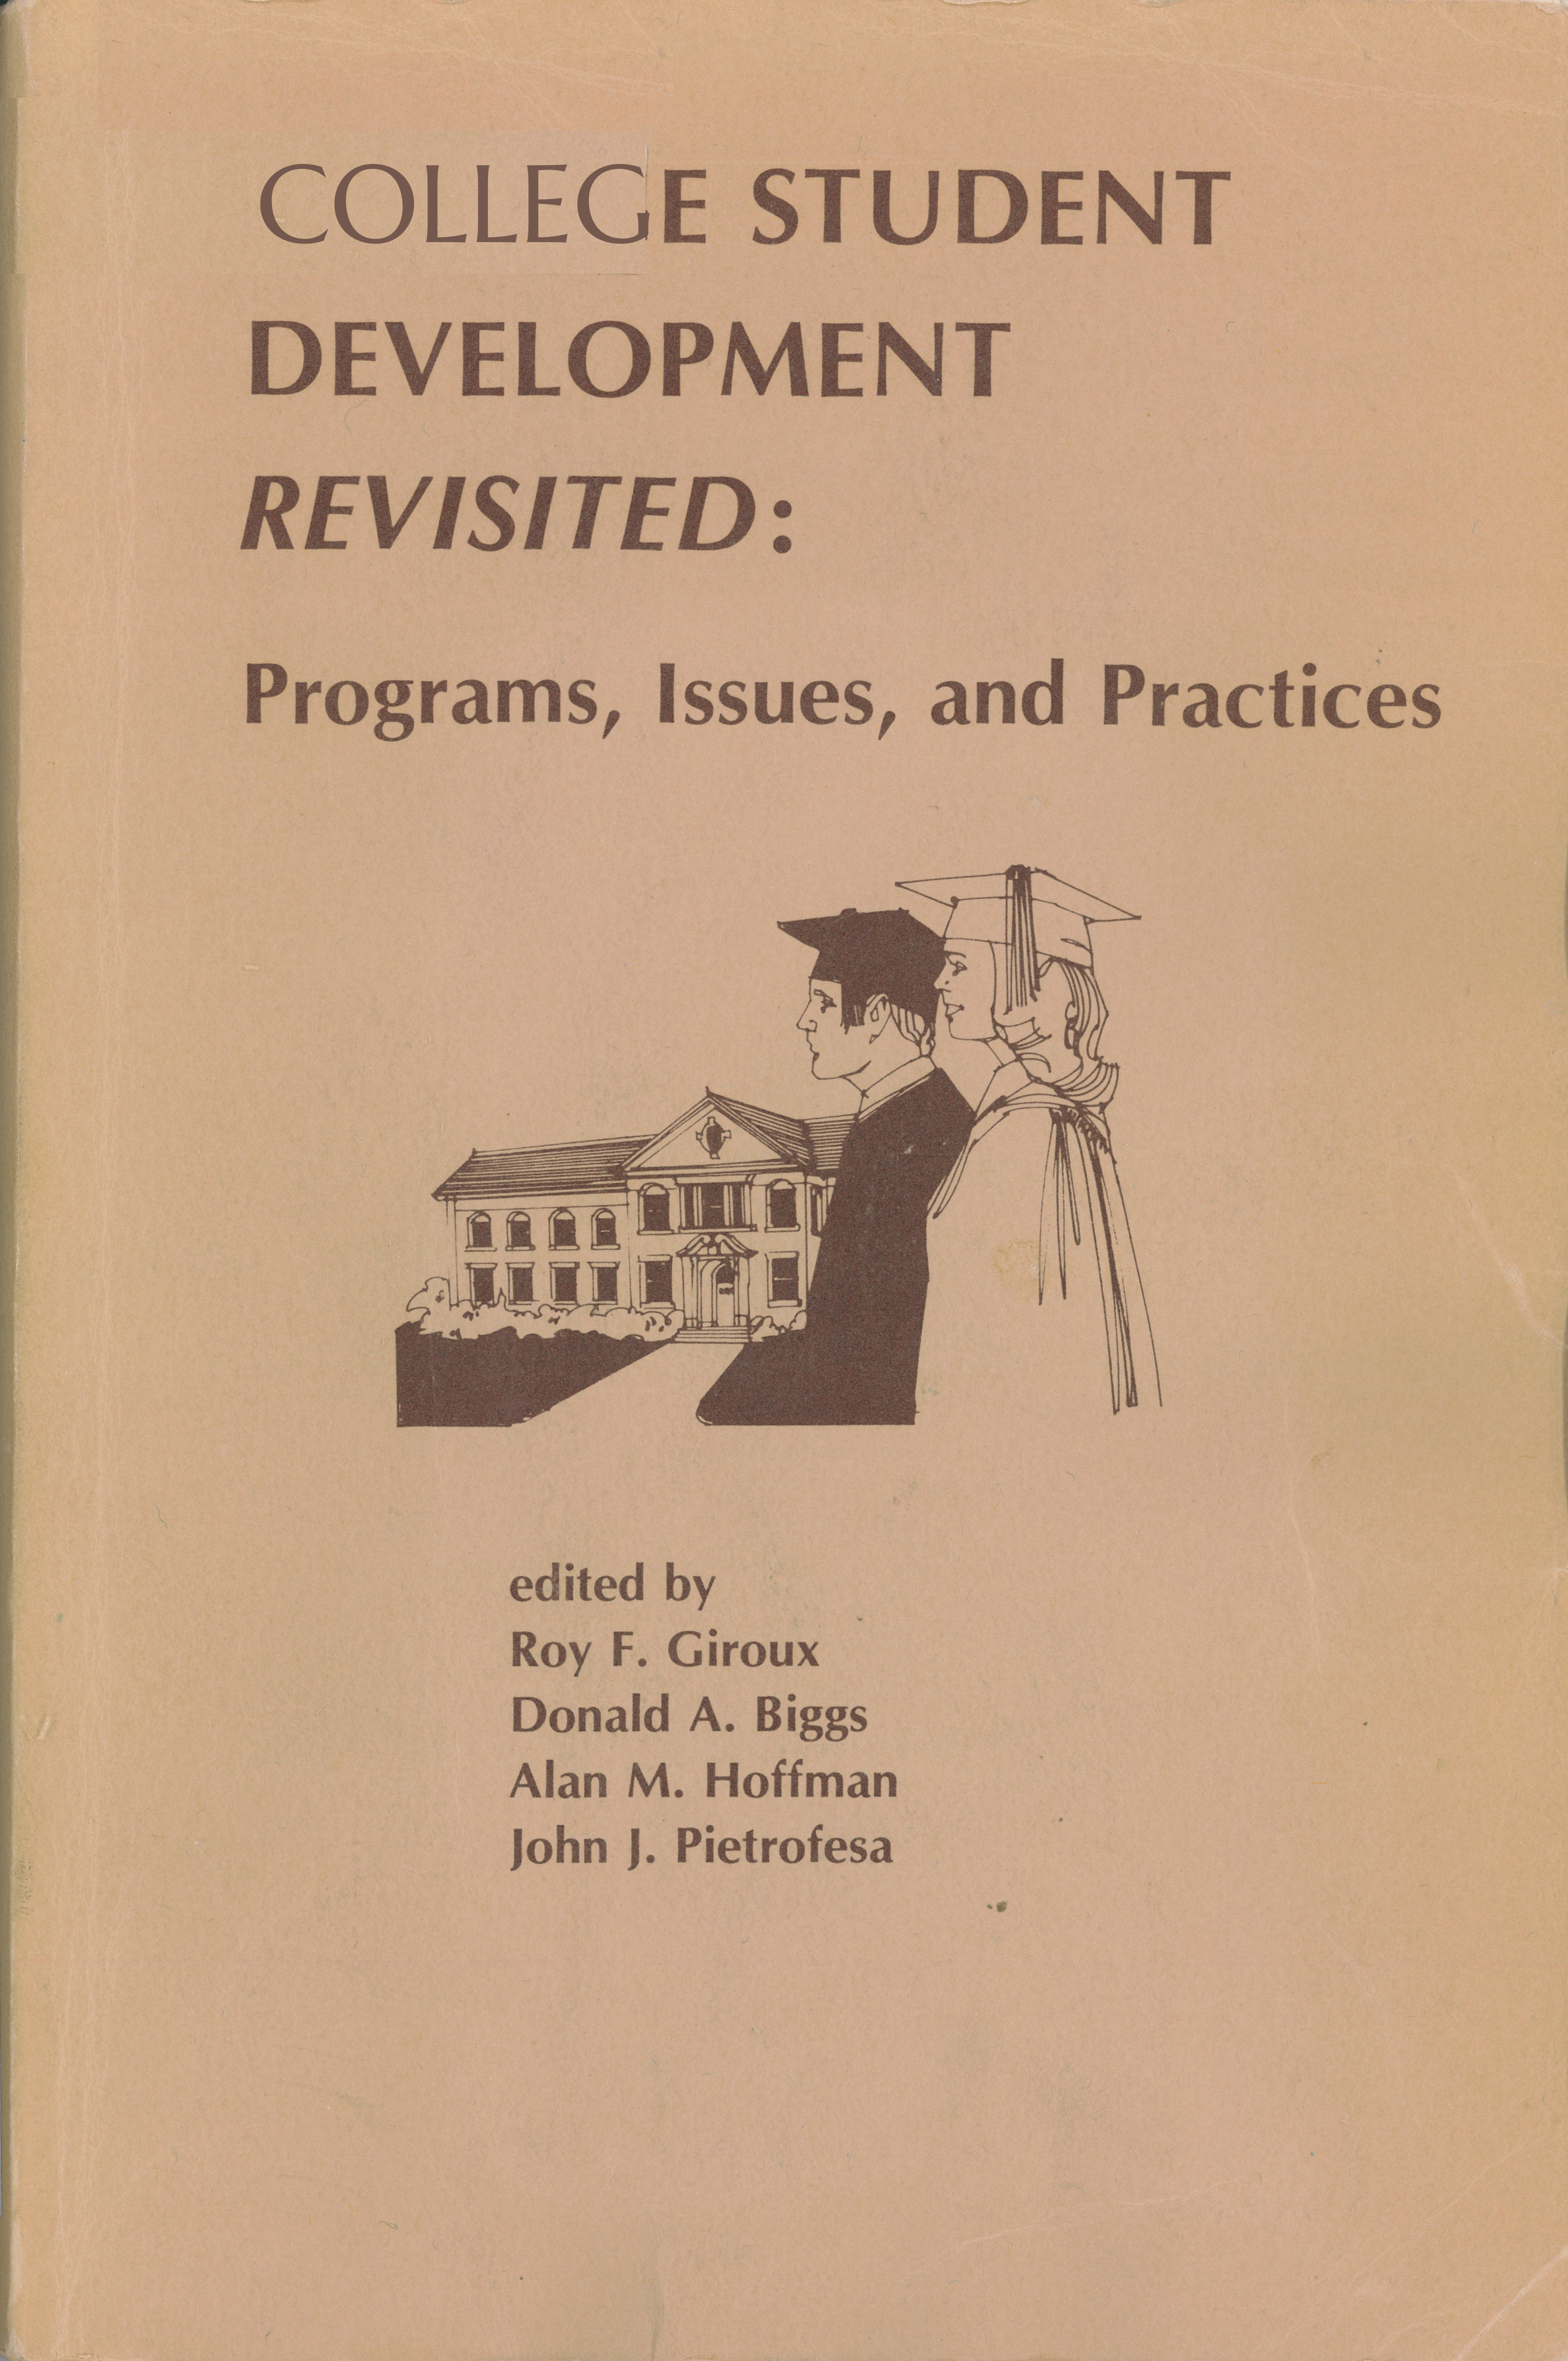 College Student Development Revisited: Programs, Issues, and Practices (Rev.)